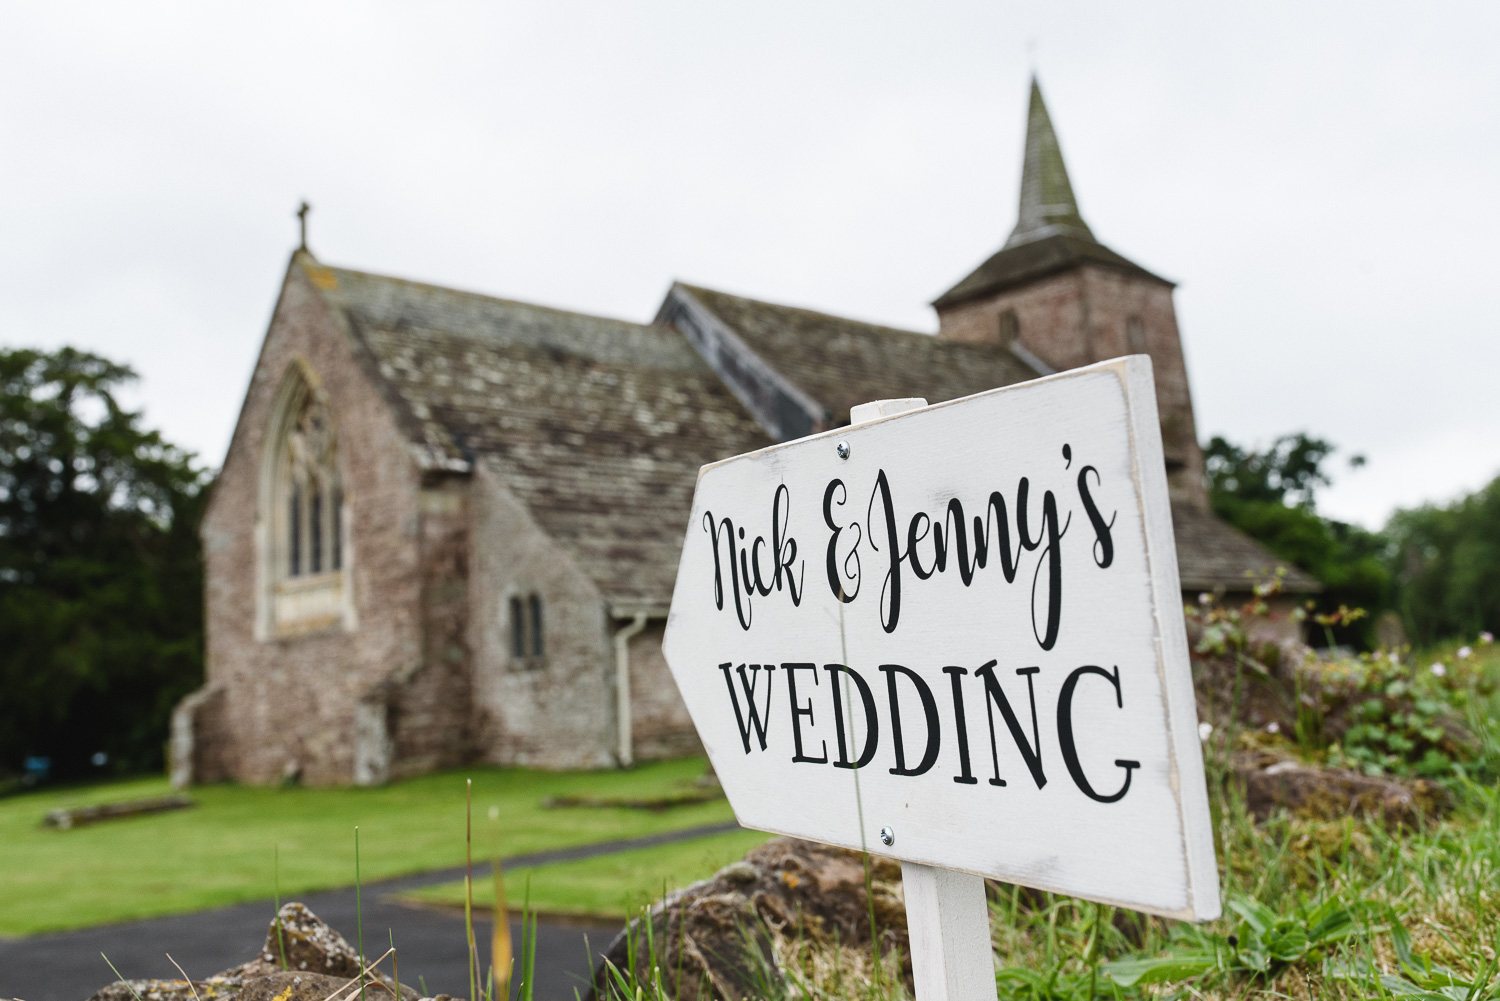 Wedding Photography in Pudleston, Herefordshire.